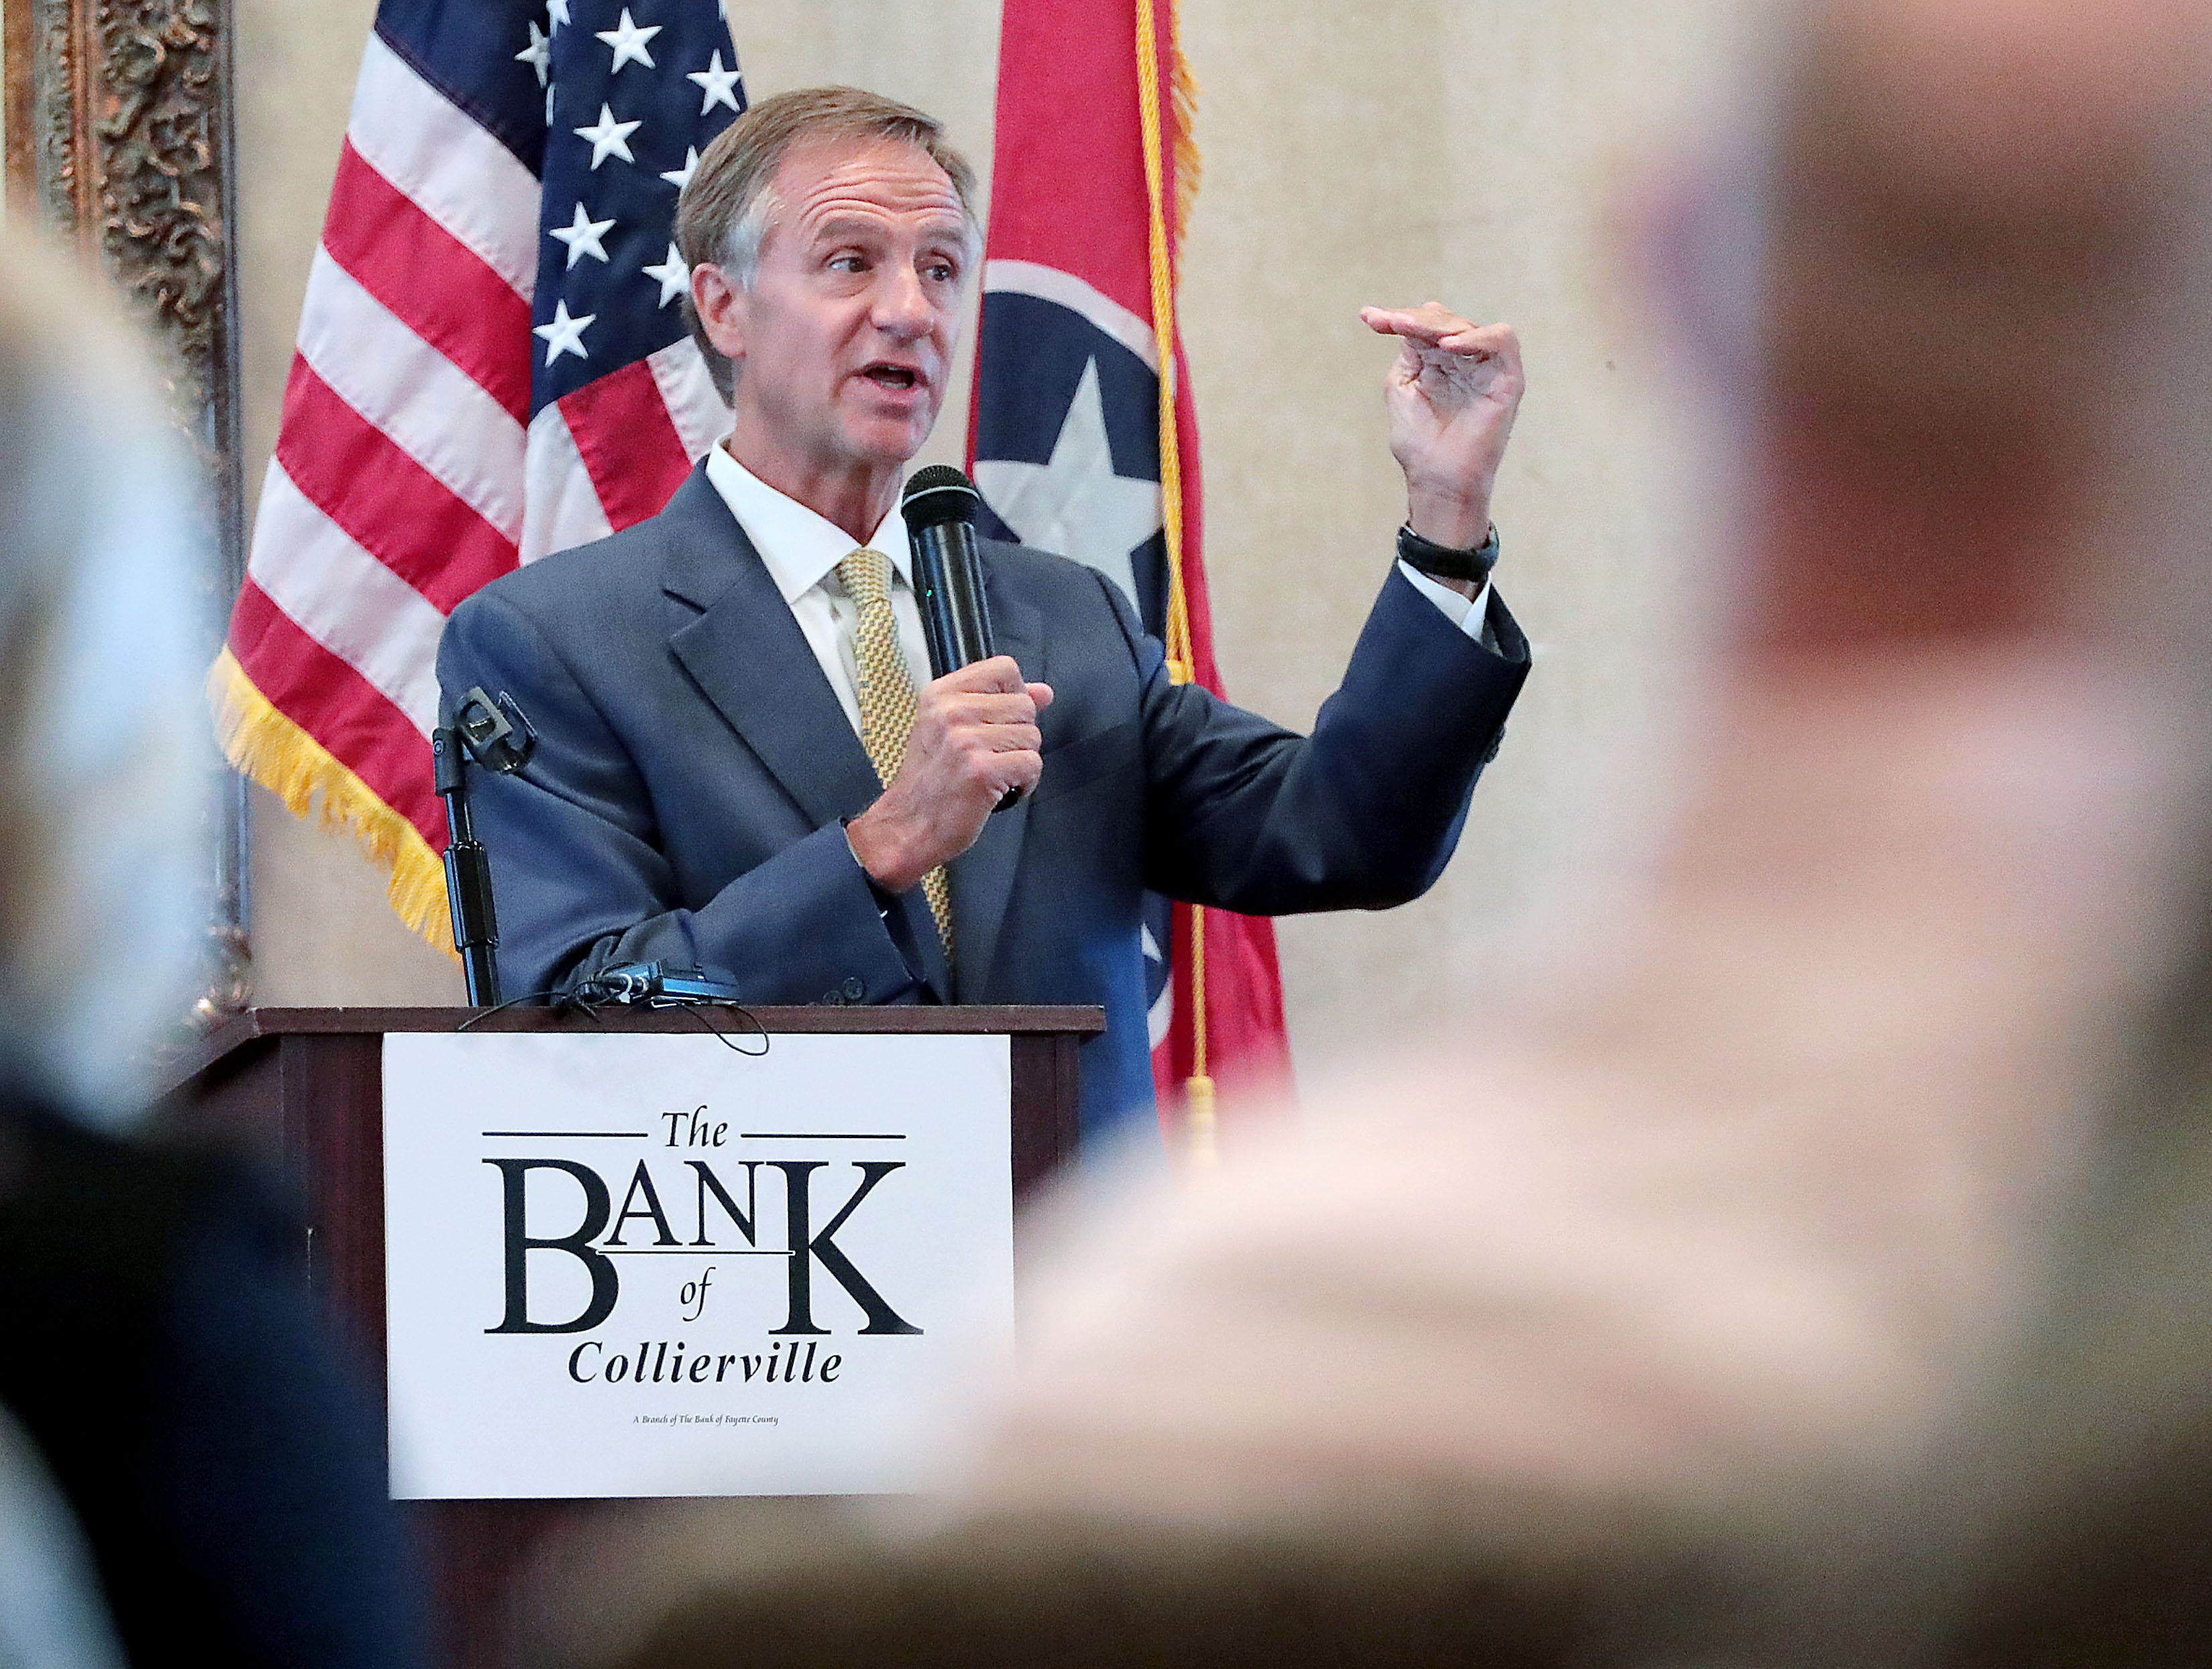 Haslam discusses achievements, expectations during Collierville event | The Commercial Appeal